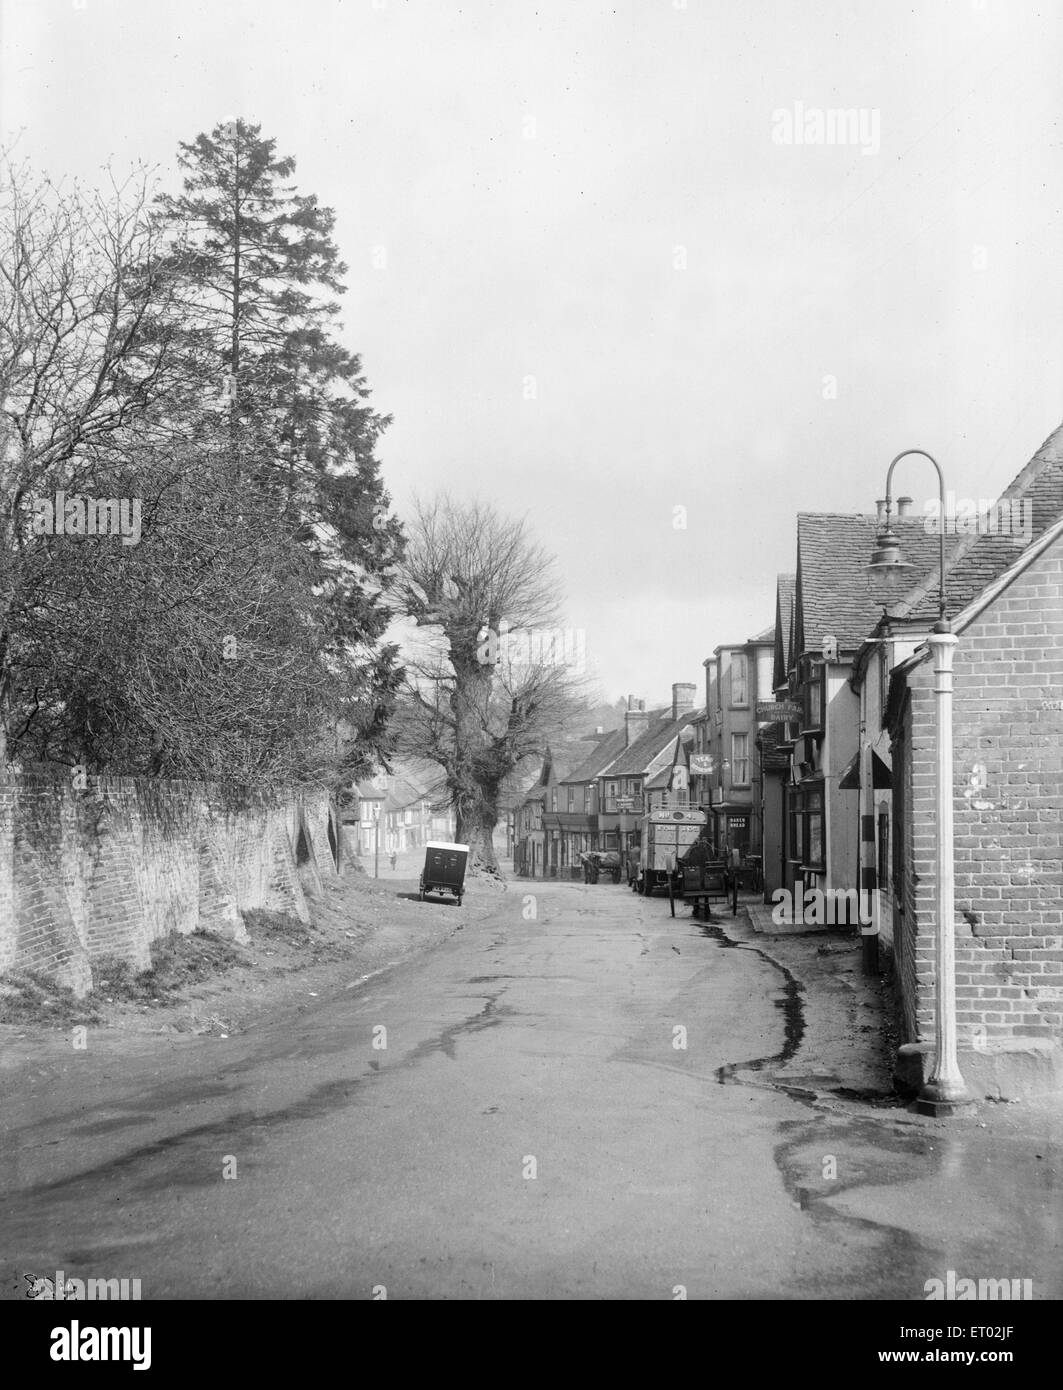 Plumtree, Chalfont St Giles Circa February 1929 - Stock Image